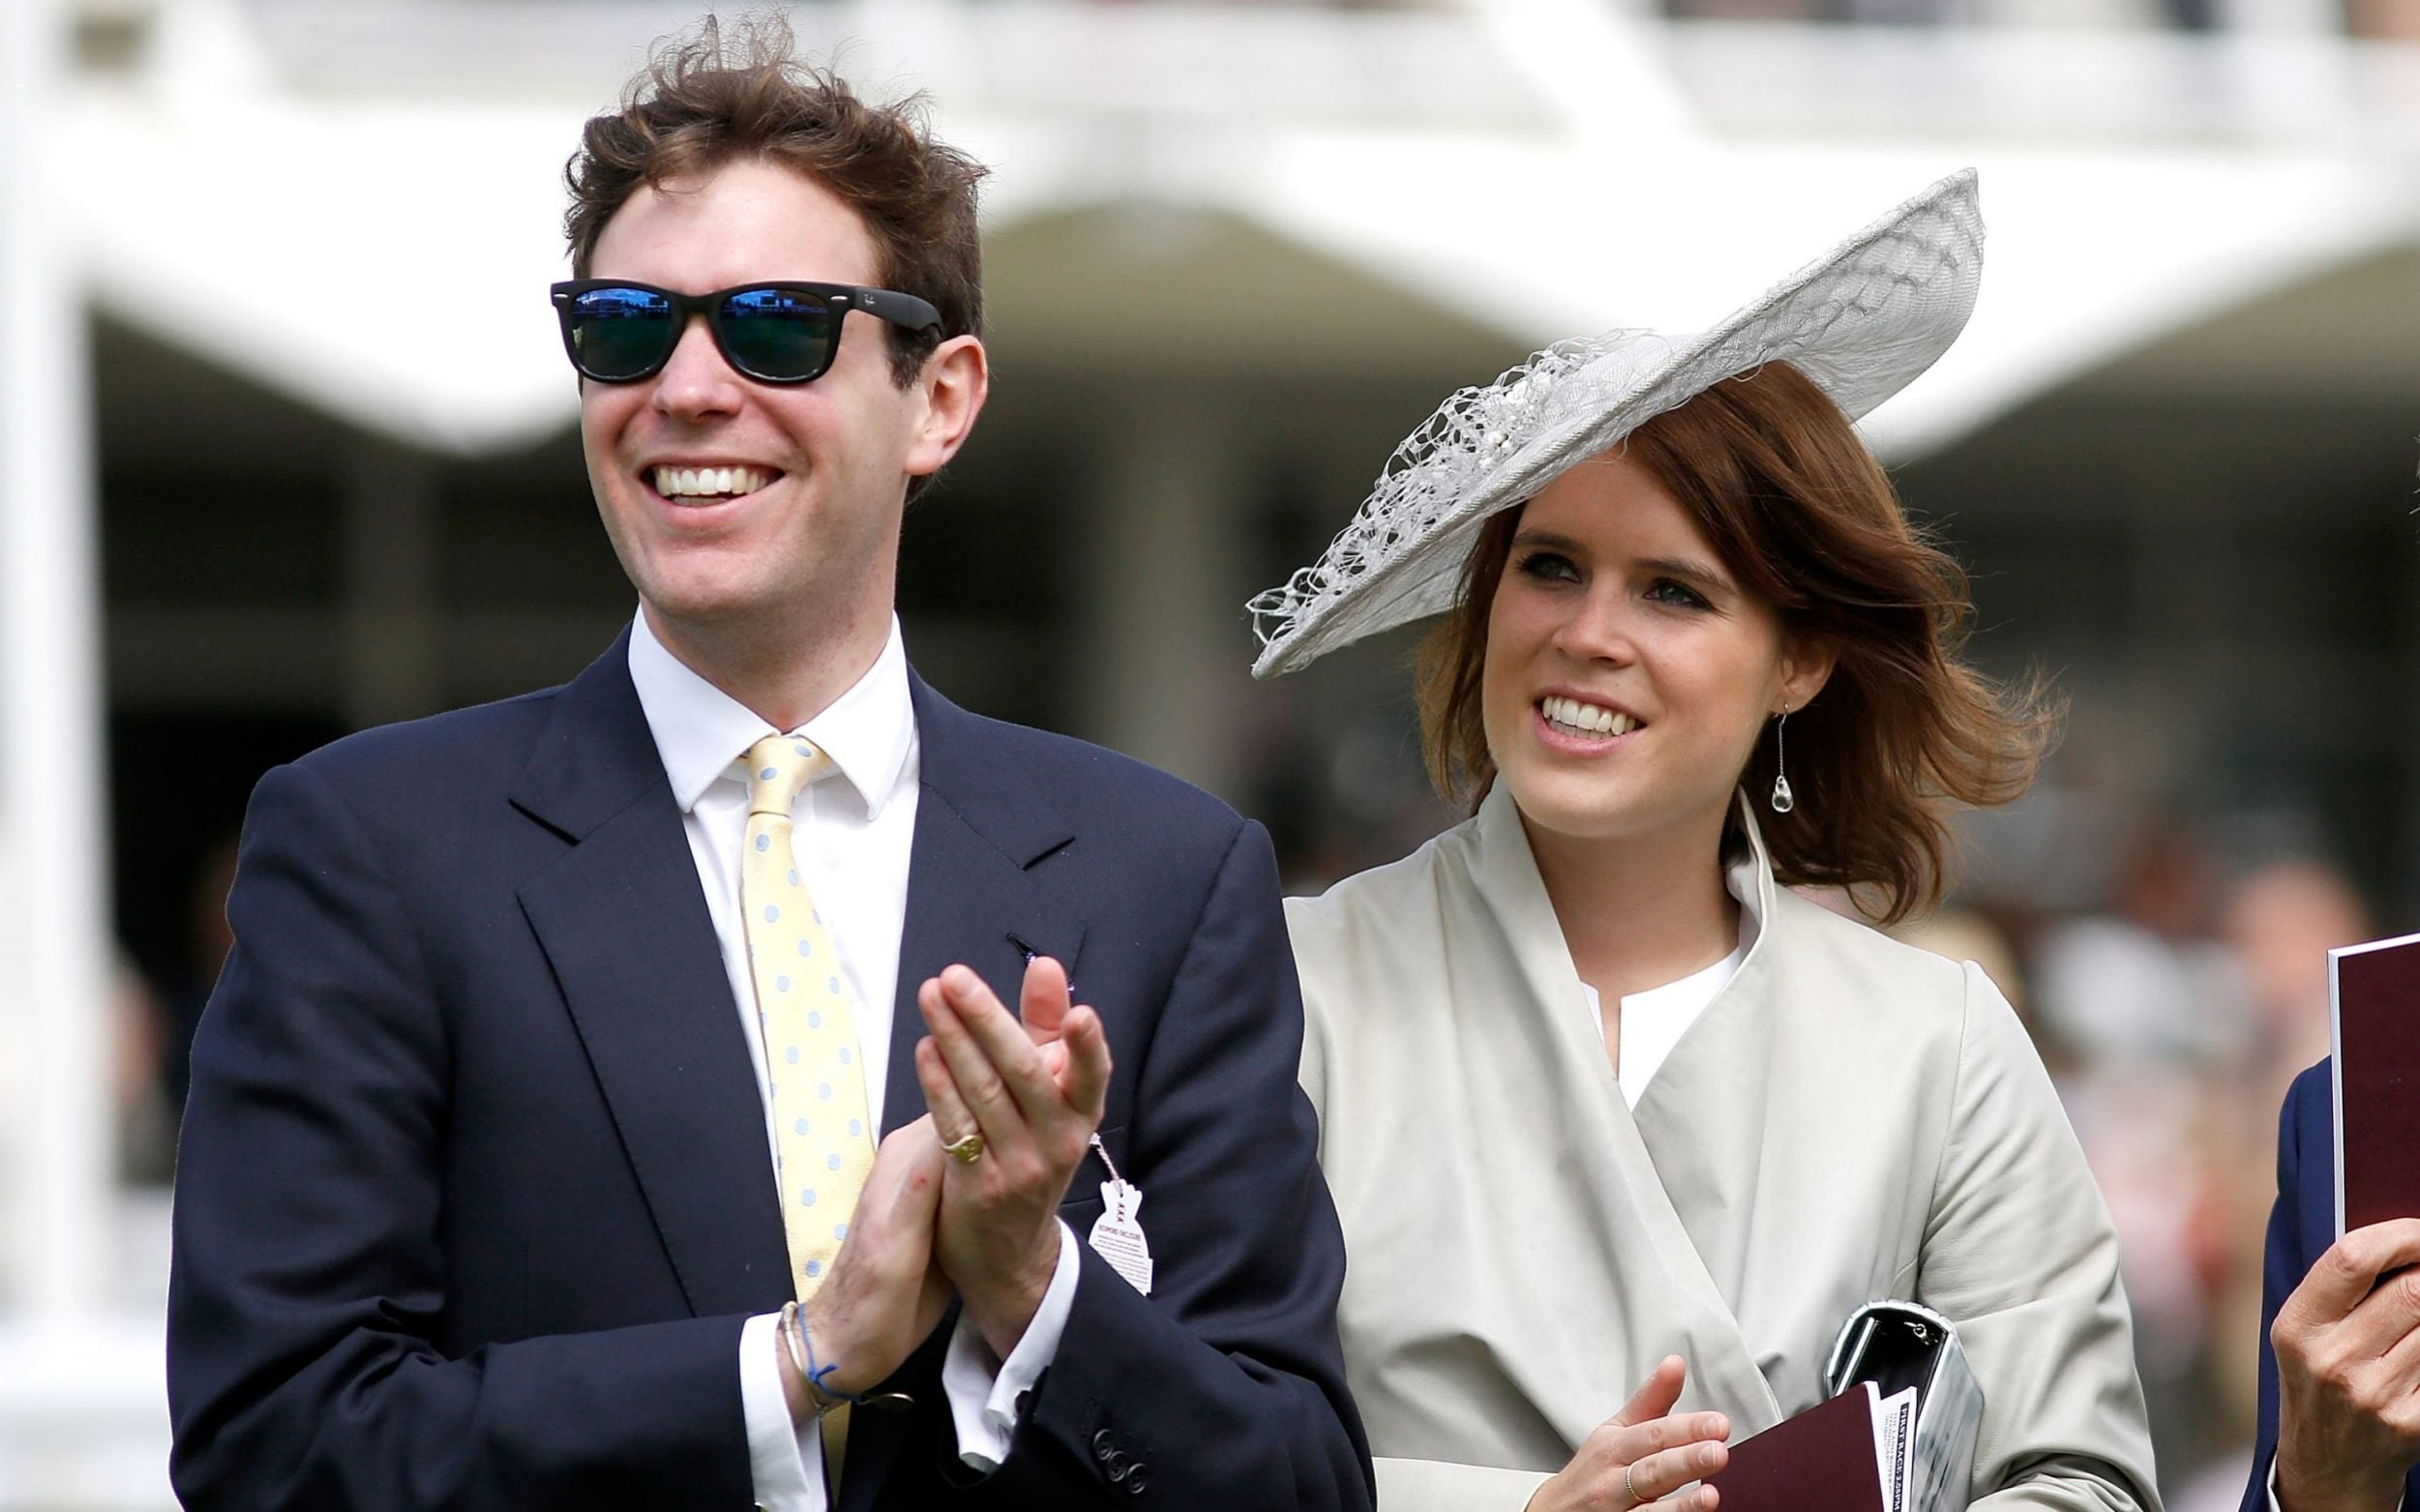 Princess Eugenie and Jack Brooksbank attend the Qatar Goodwood Festival at Goodwood Racecourse on July 30, 2015 in Chichester